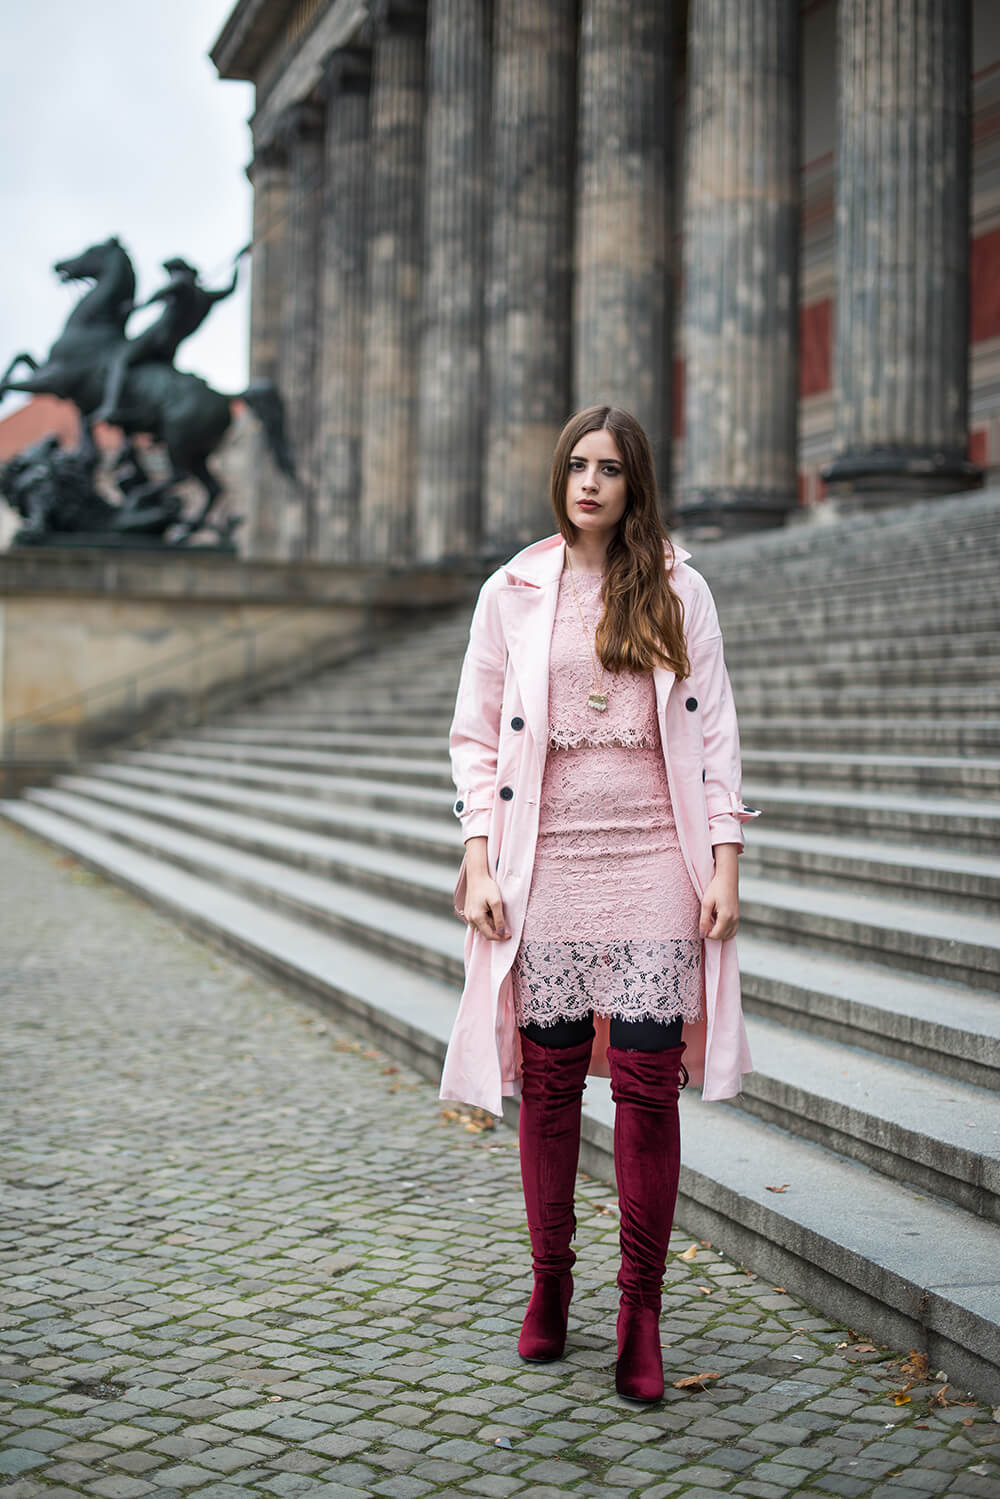 andysparkles-Outfit-Abendlook-Samt Overknee Stiefel